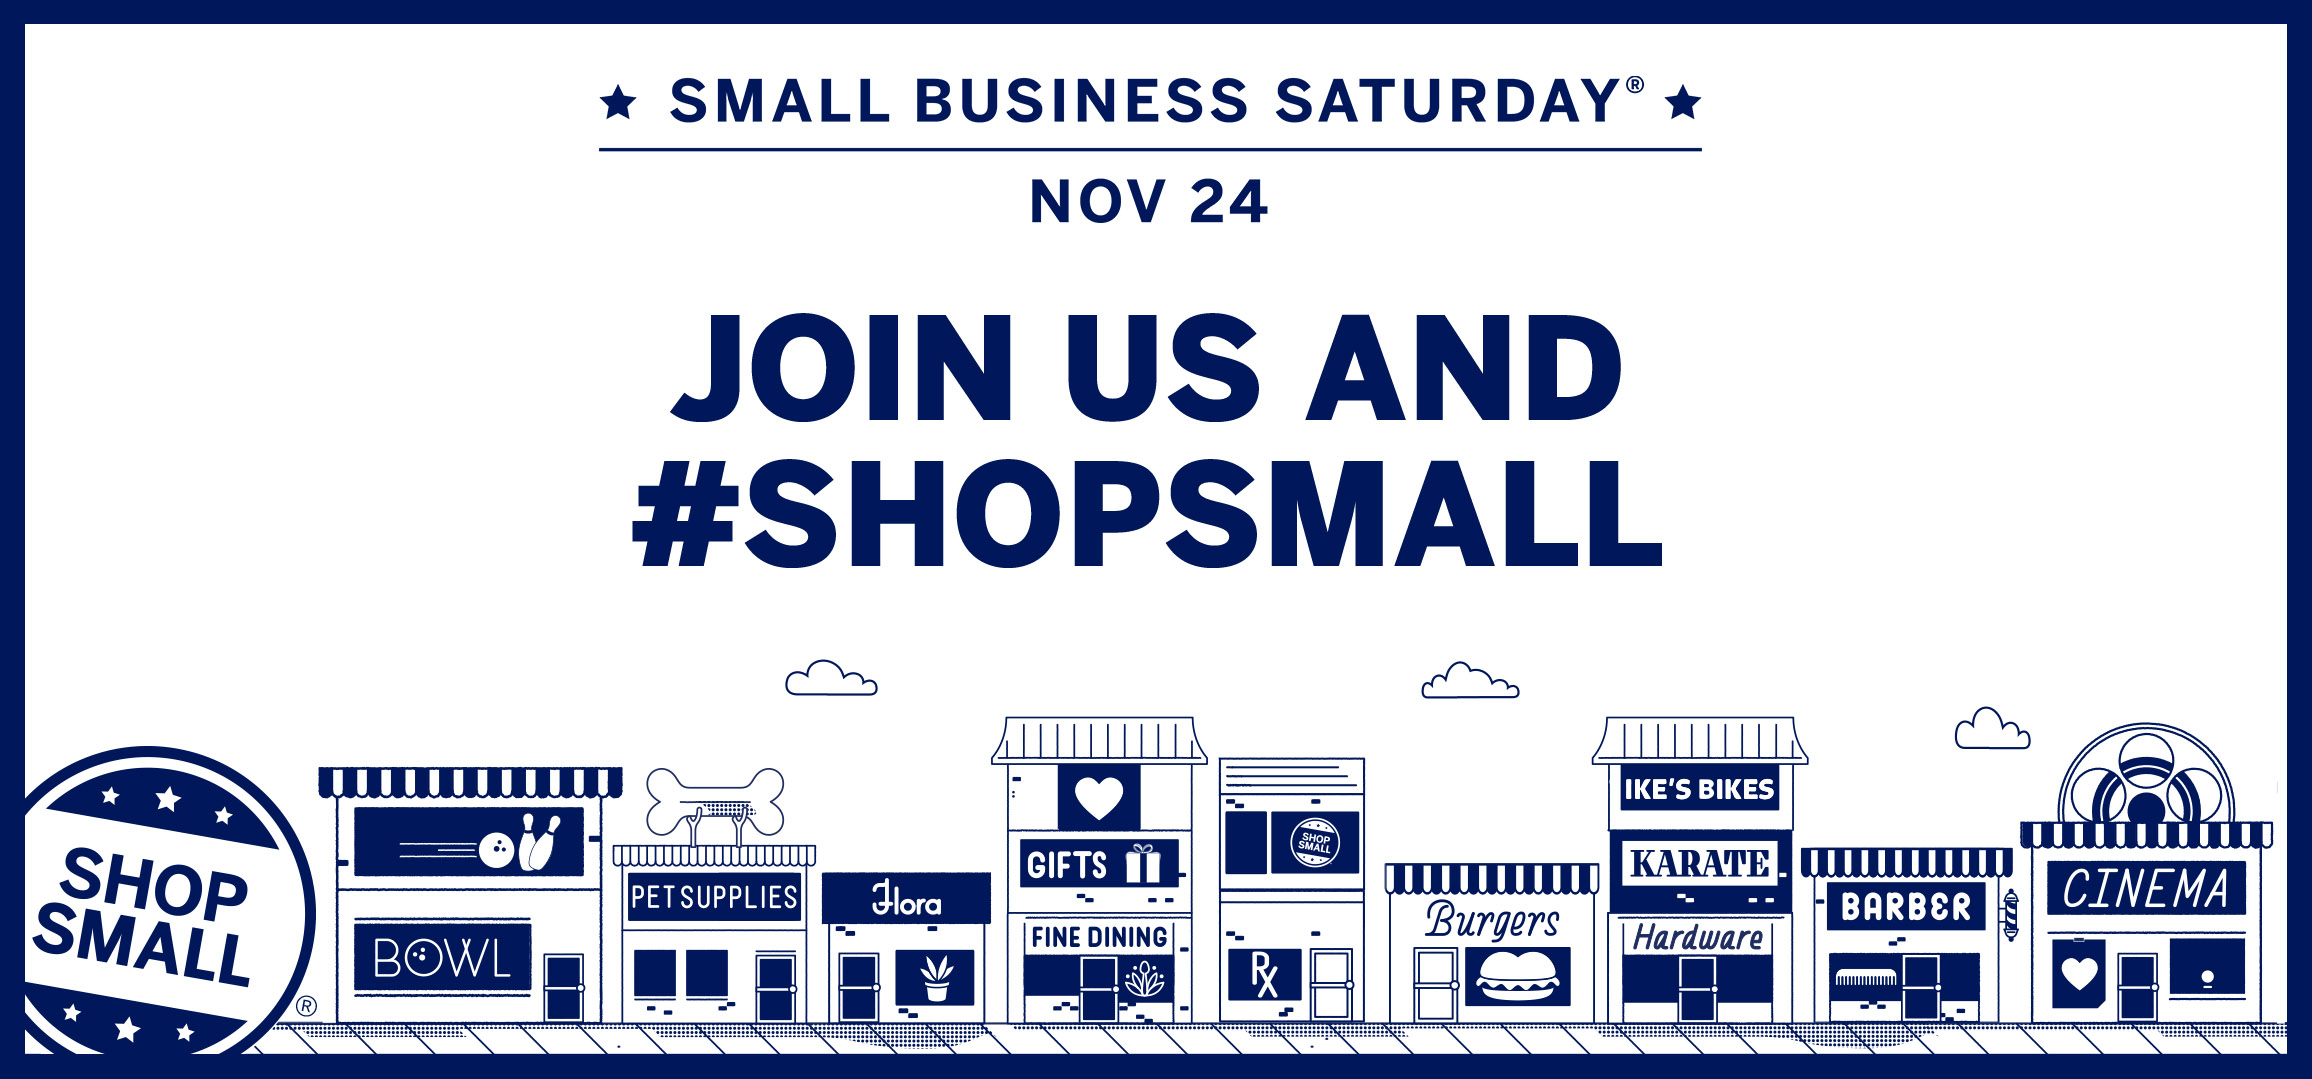 Small Business Saturday is an Opportunity to Support Your Local Community